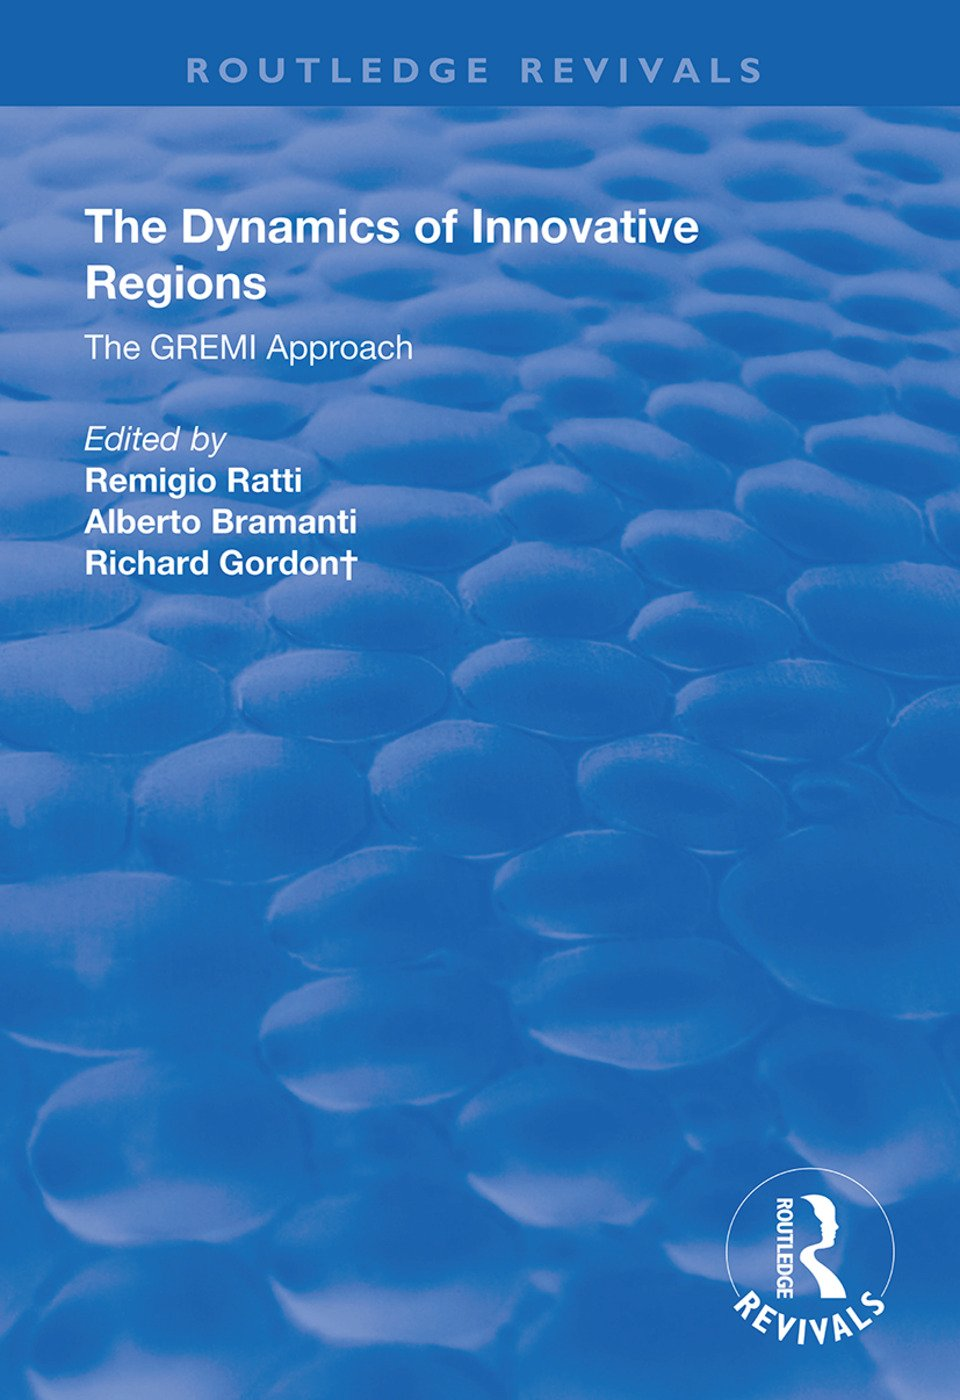 The Dynamics of Innovative Regions: The GREMI Approach book cover